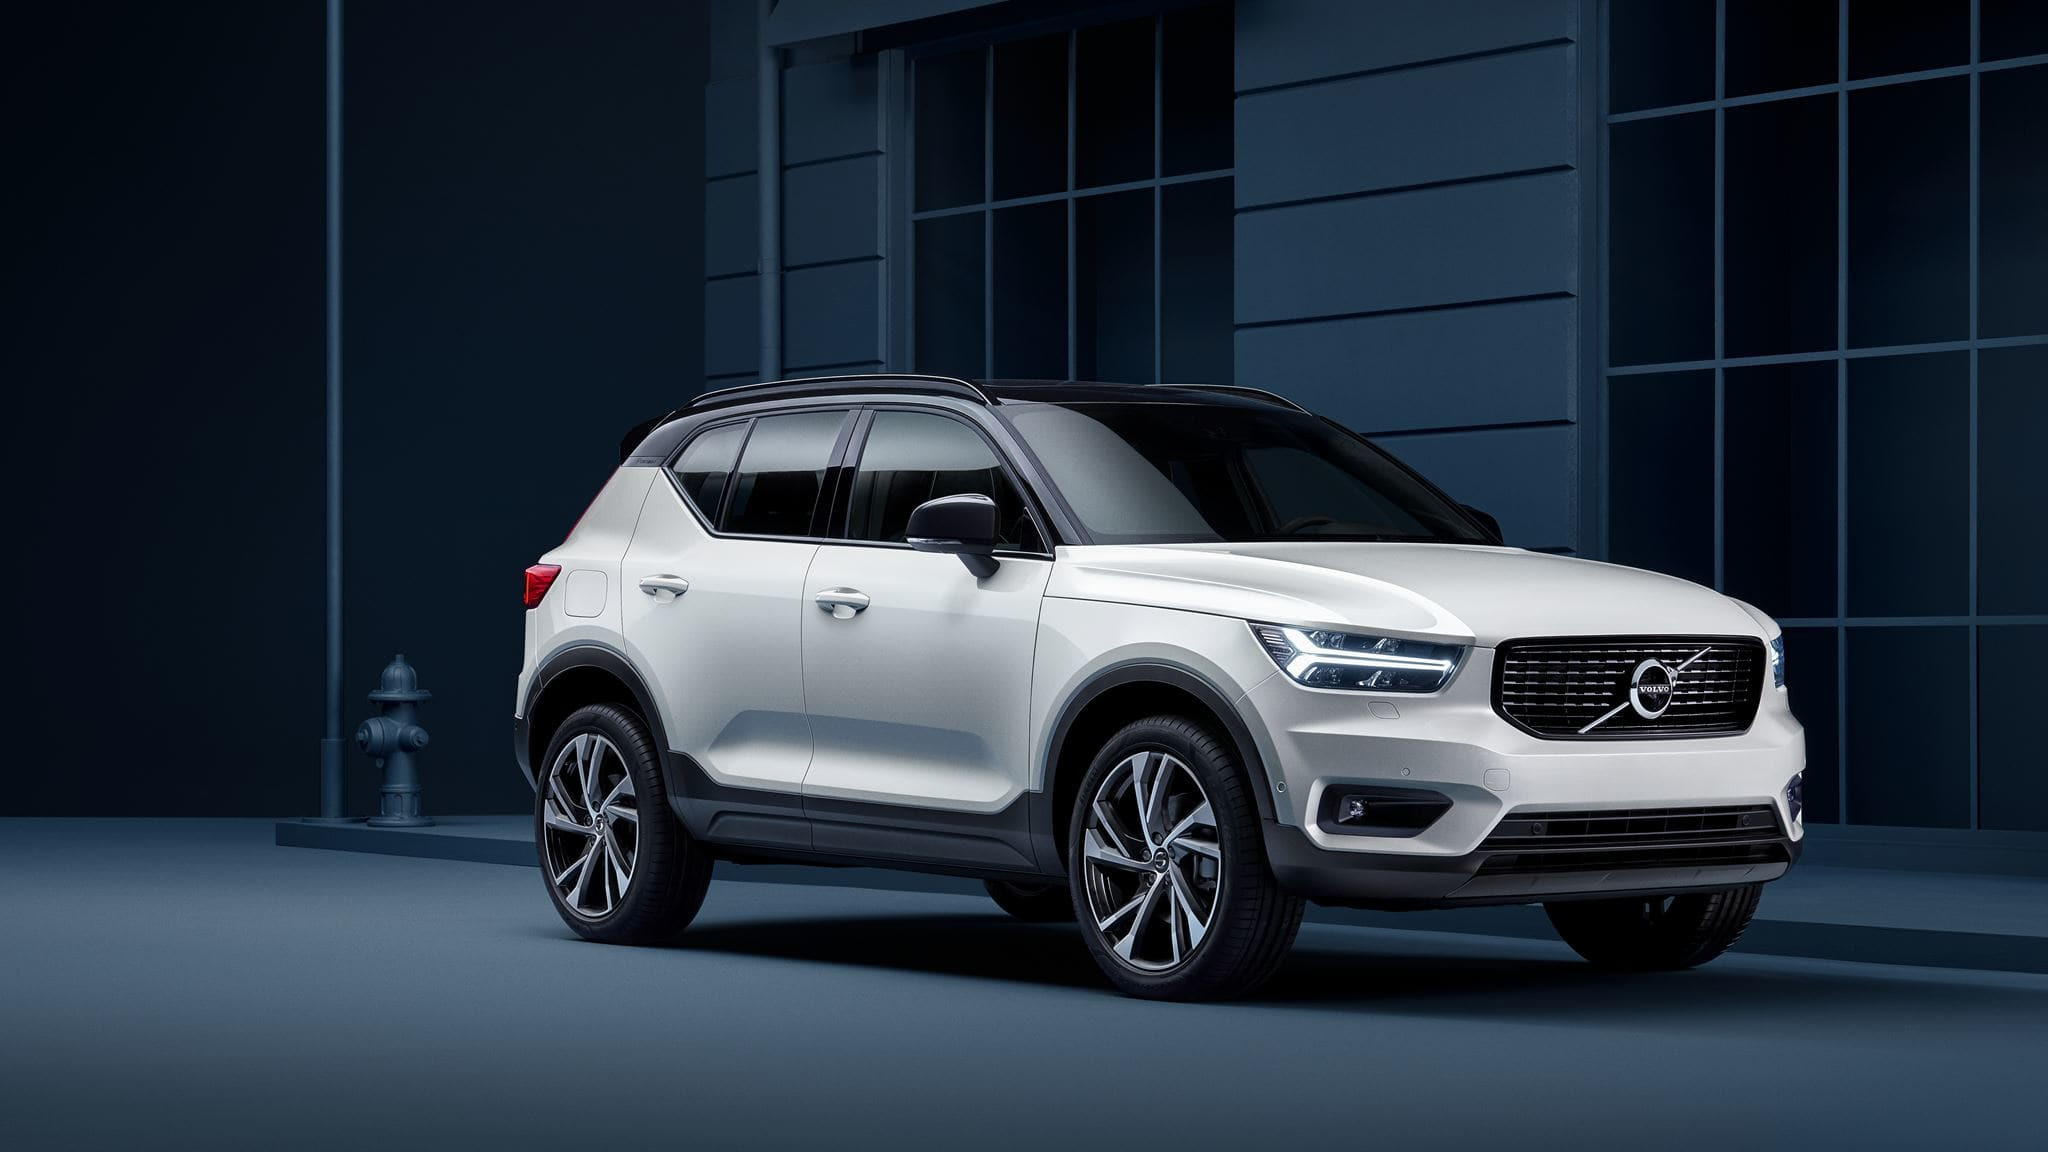 Lateral volvo xc40